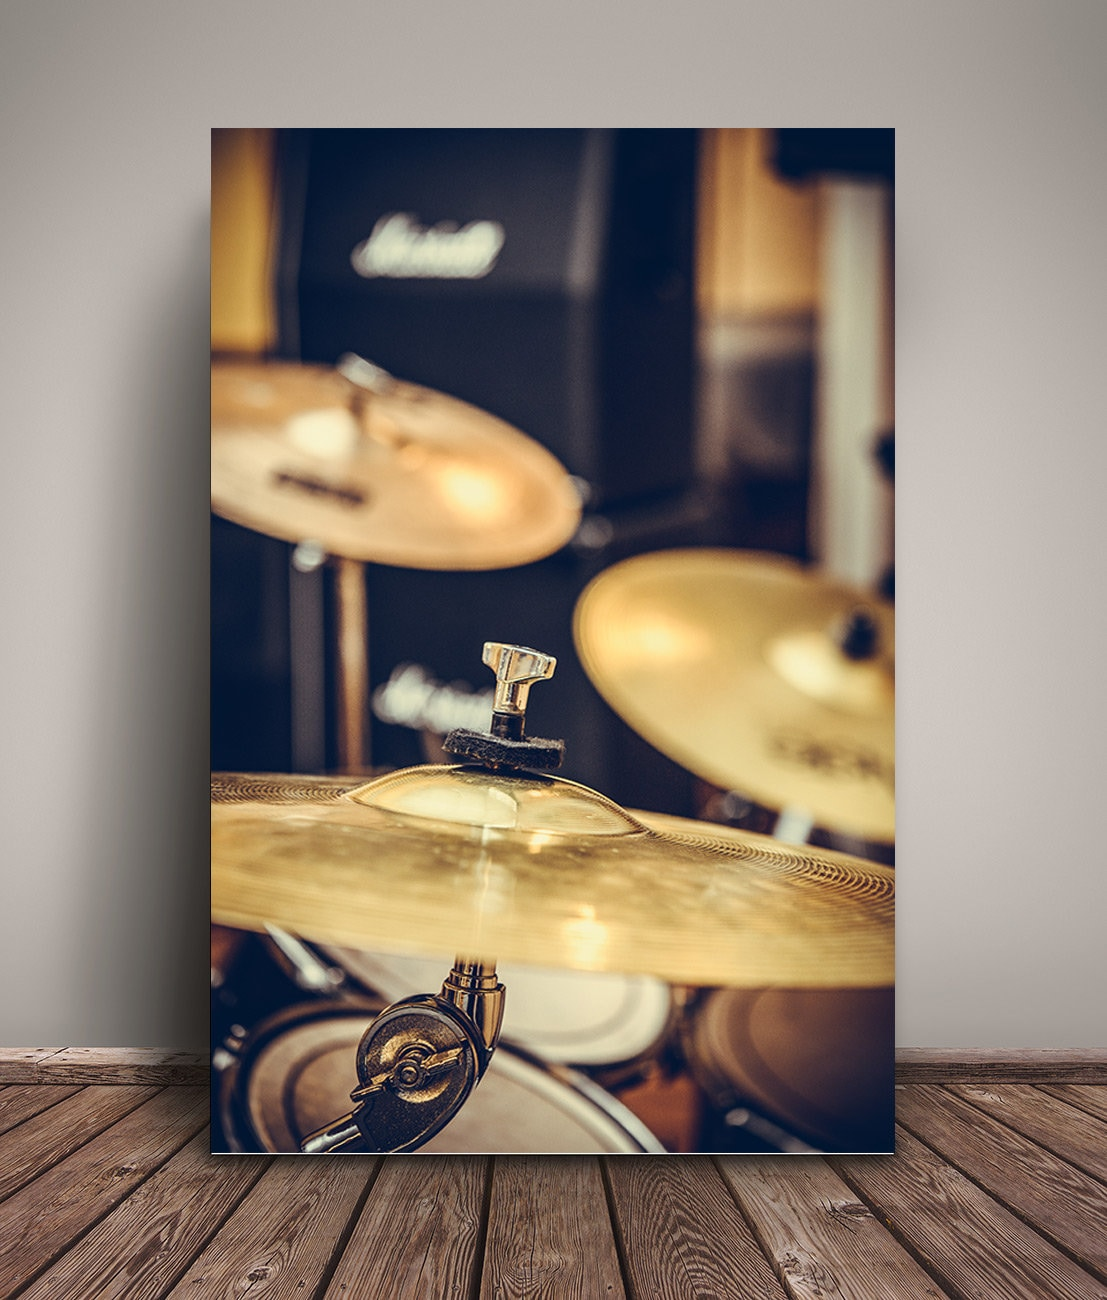 Drum music photo poster wall art decor cymbal photography | Etsy